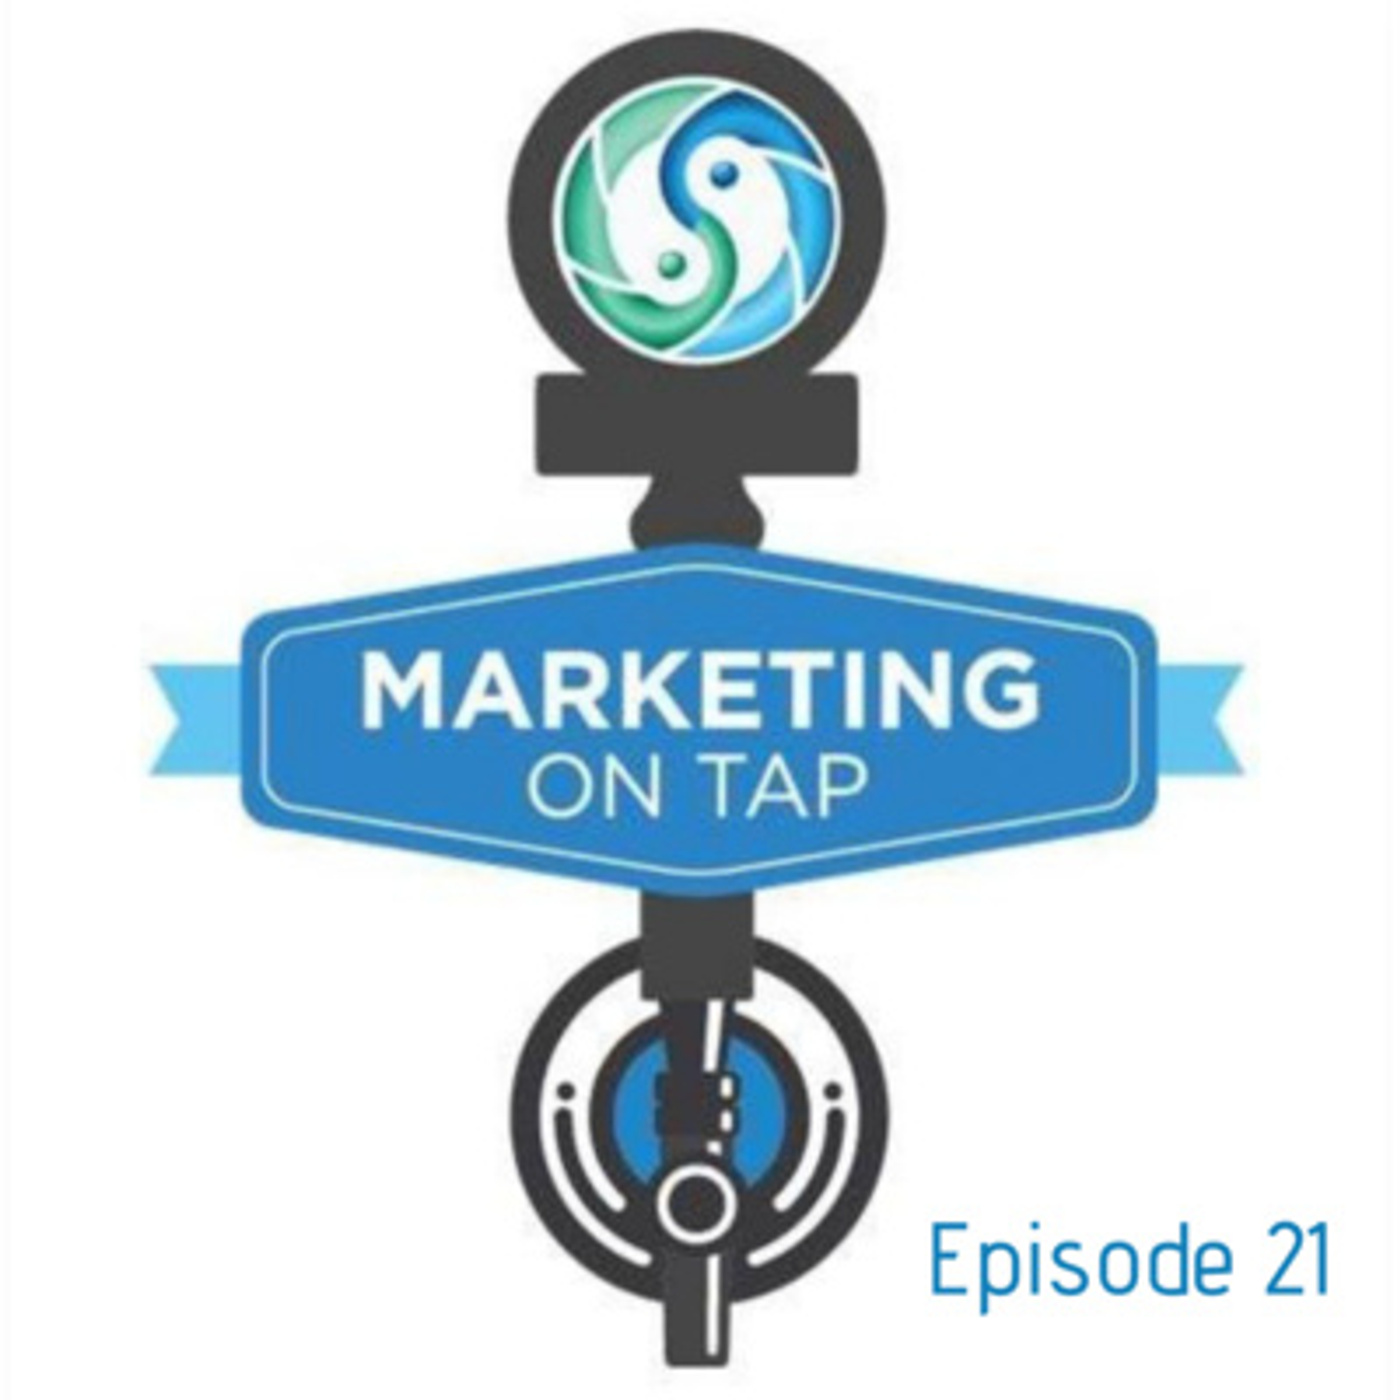 Episode 21: Fashion Fails, Brand Apologies, and Marketing Gone Wrong